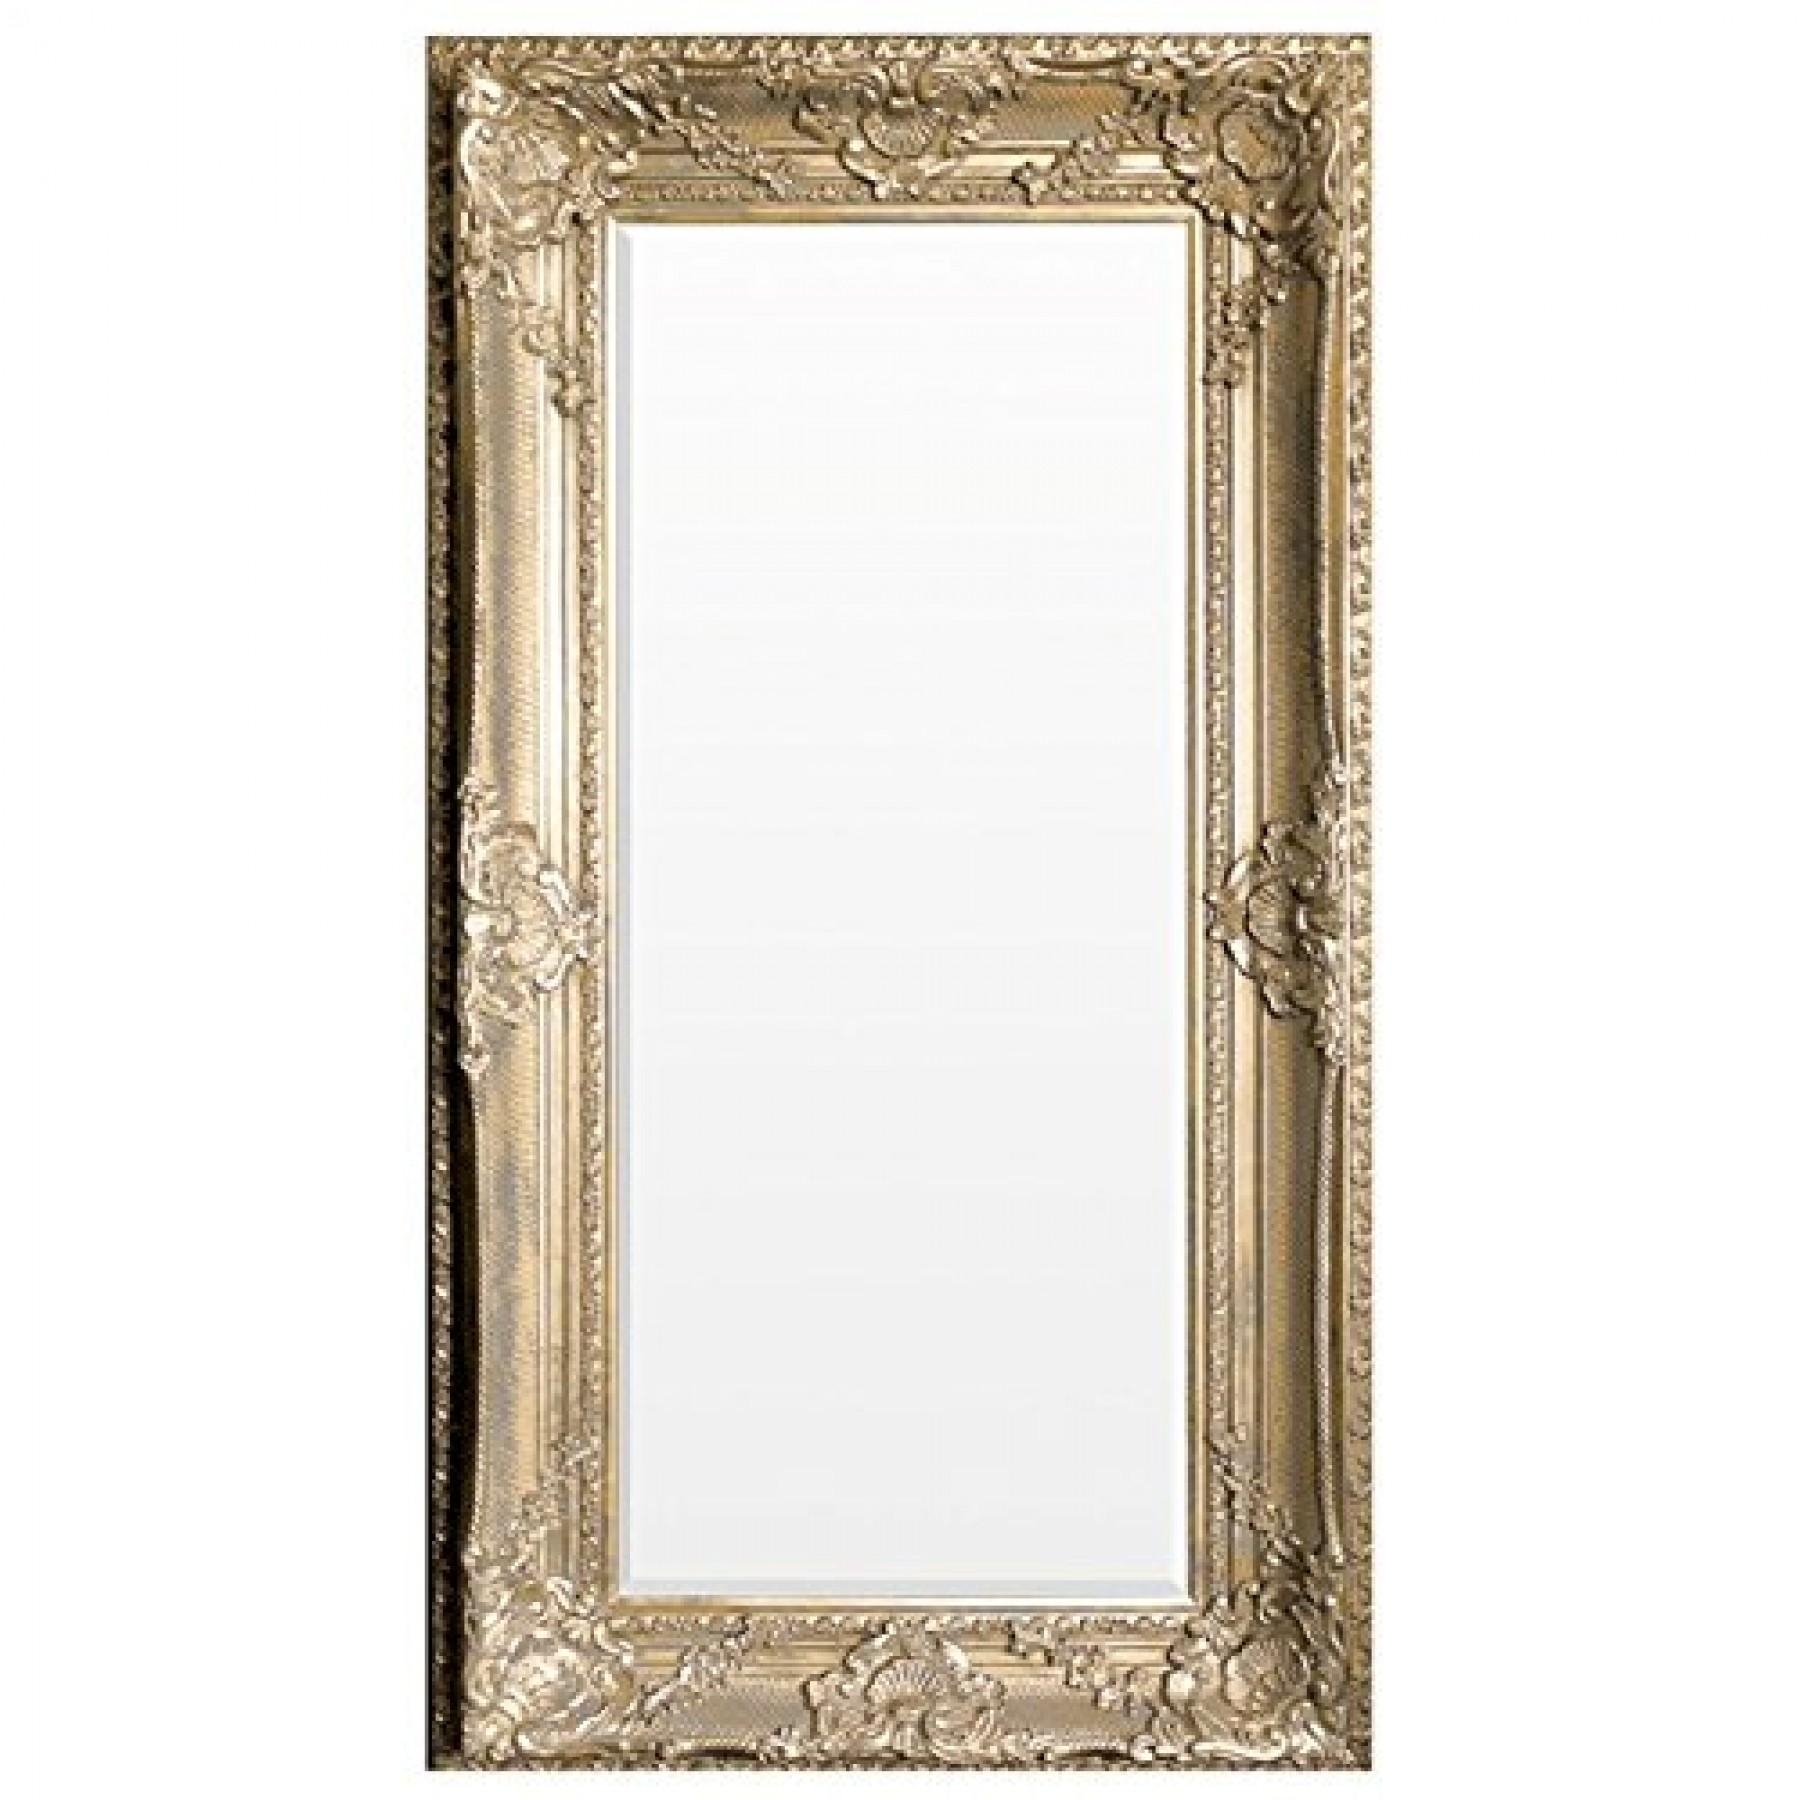 Ornate Shabby Chic Mirror (Extra Large) Intended For Gold Ornate Mirrors (View 9 of 20)